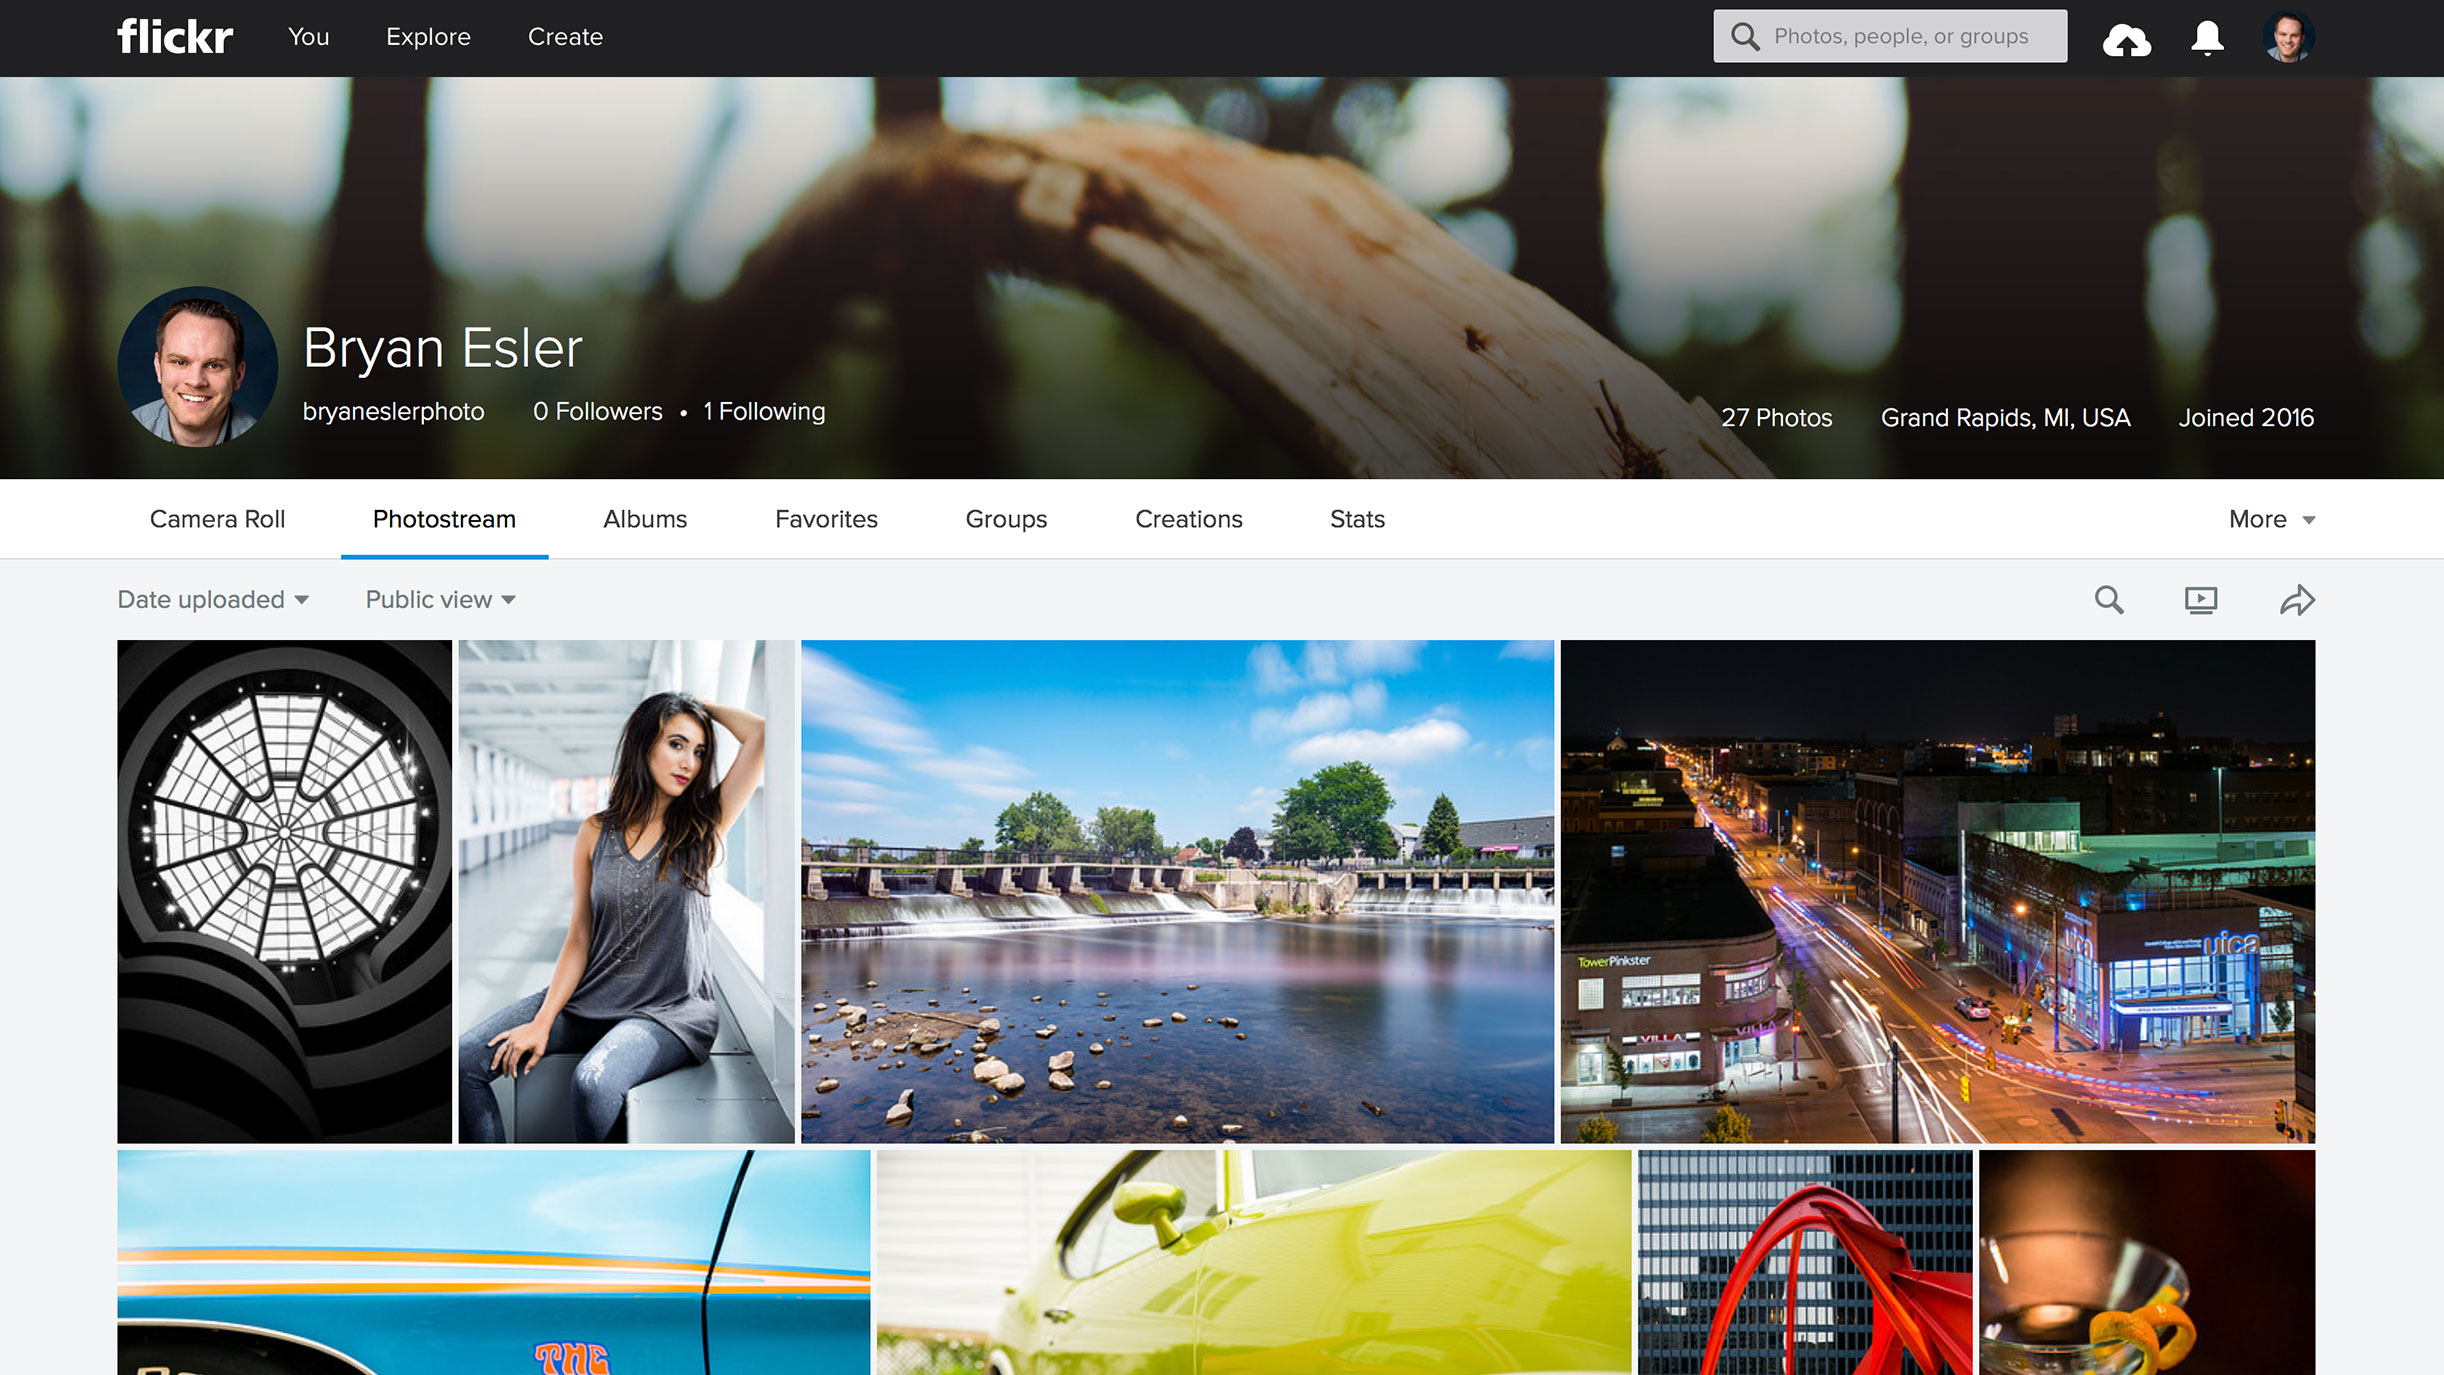 flickr-featured